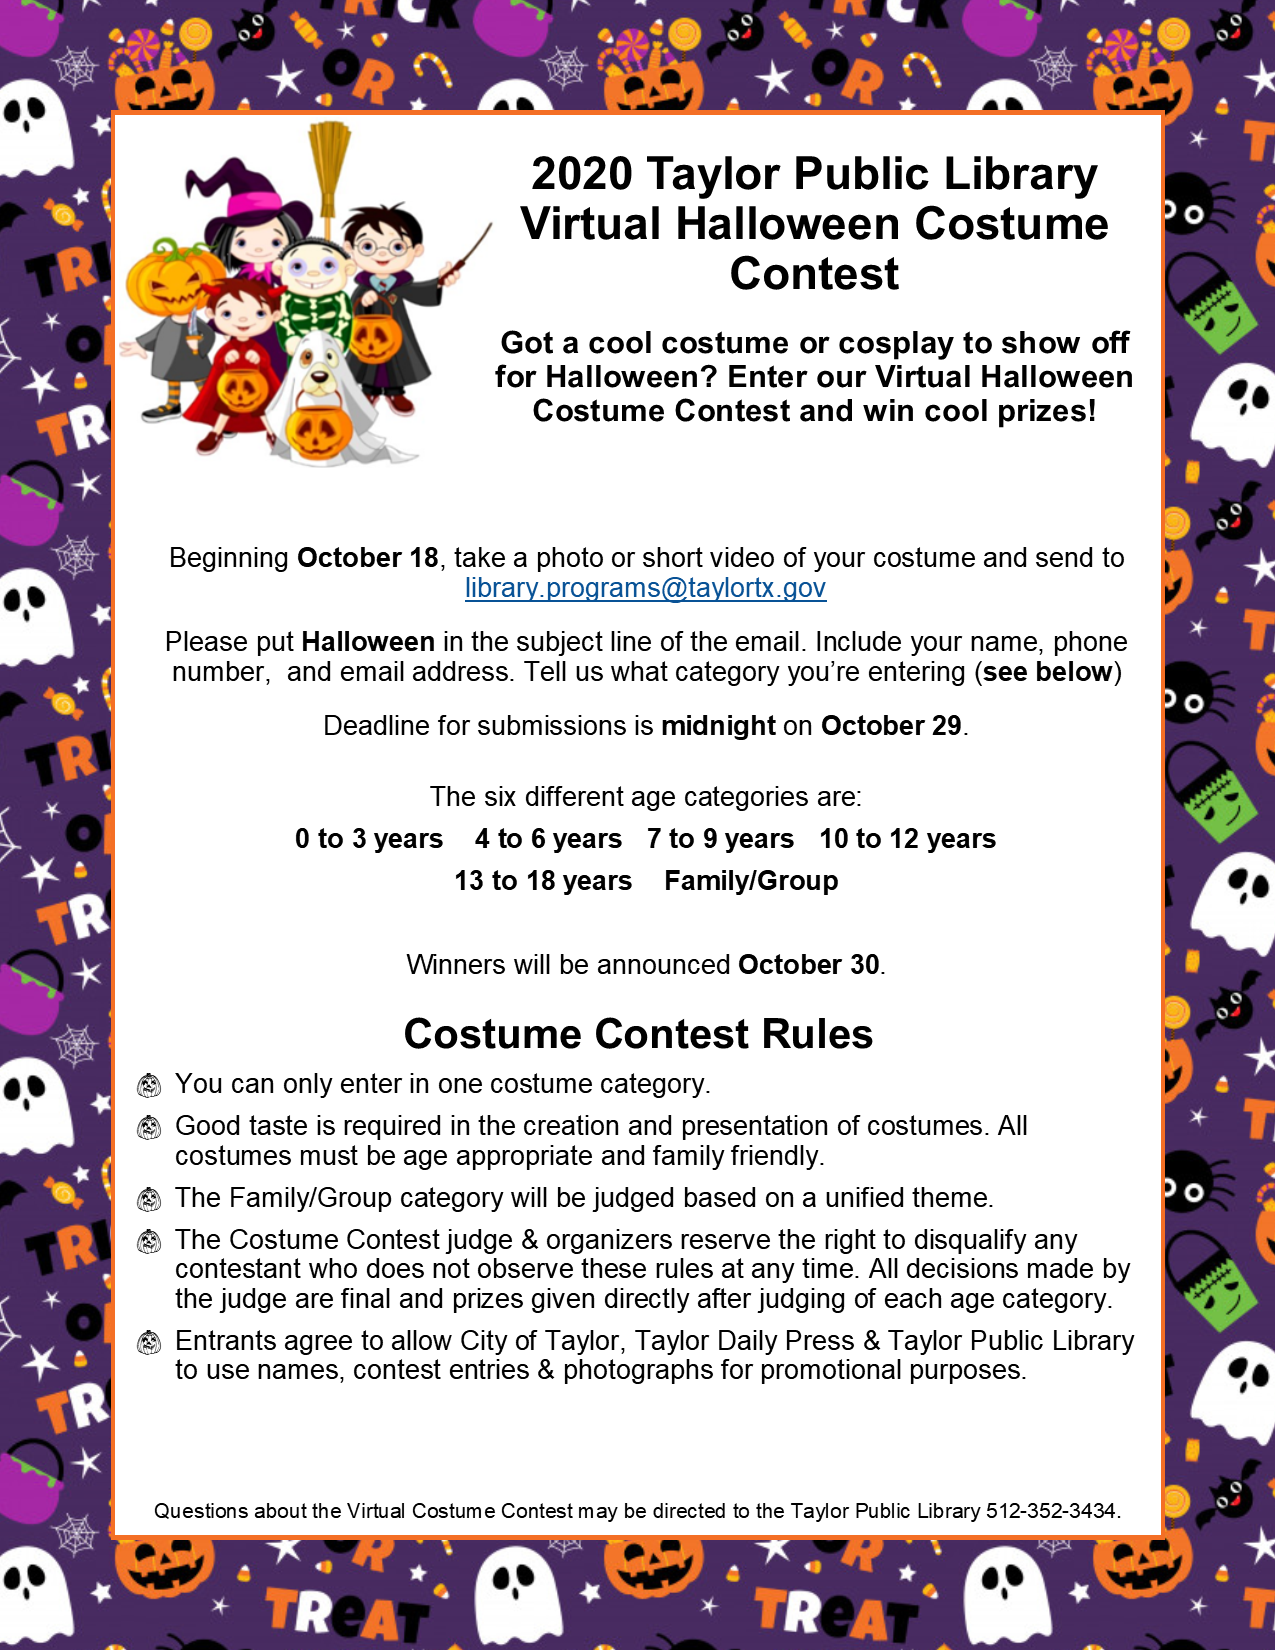 2020 Vitual Costume Contest Rules